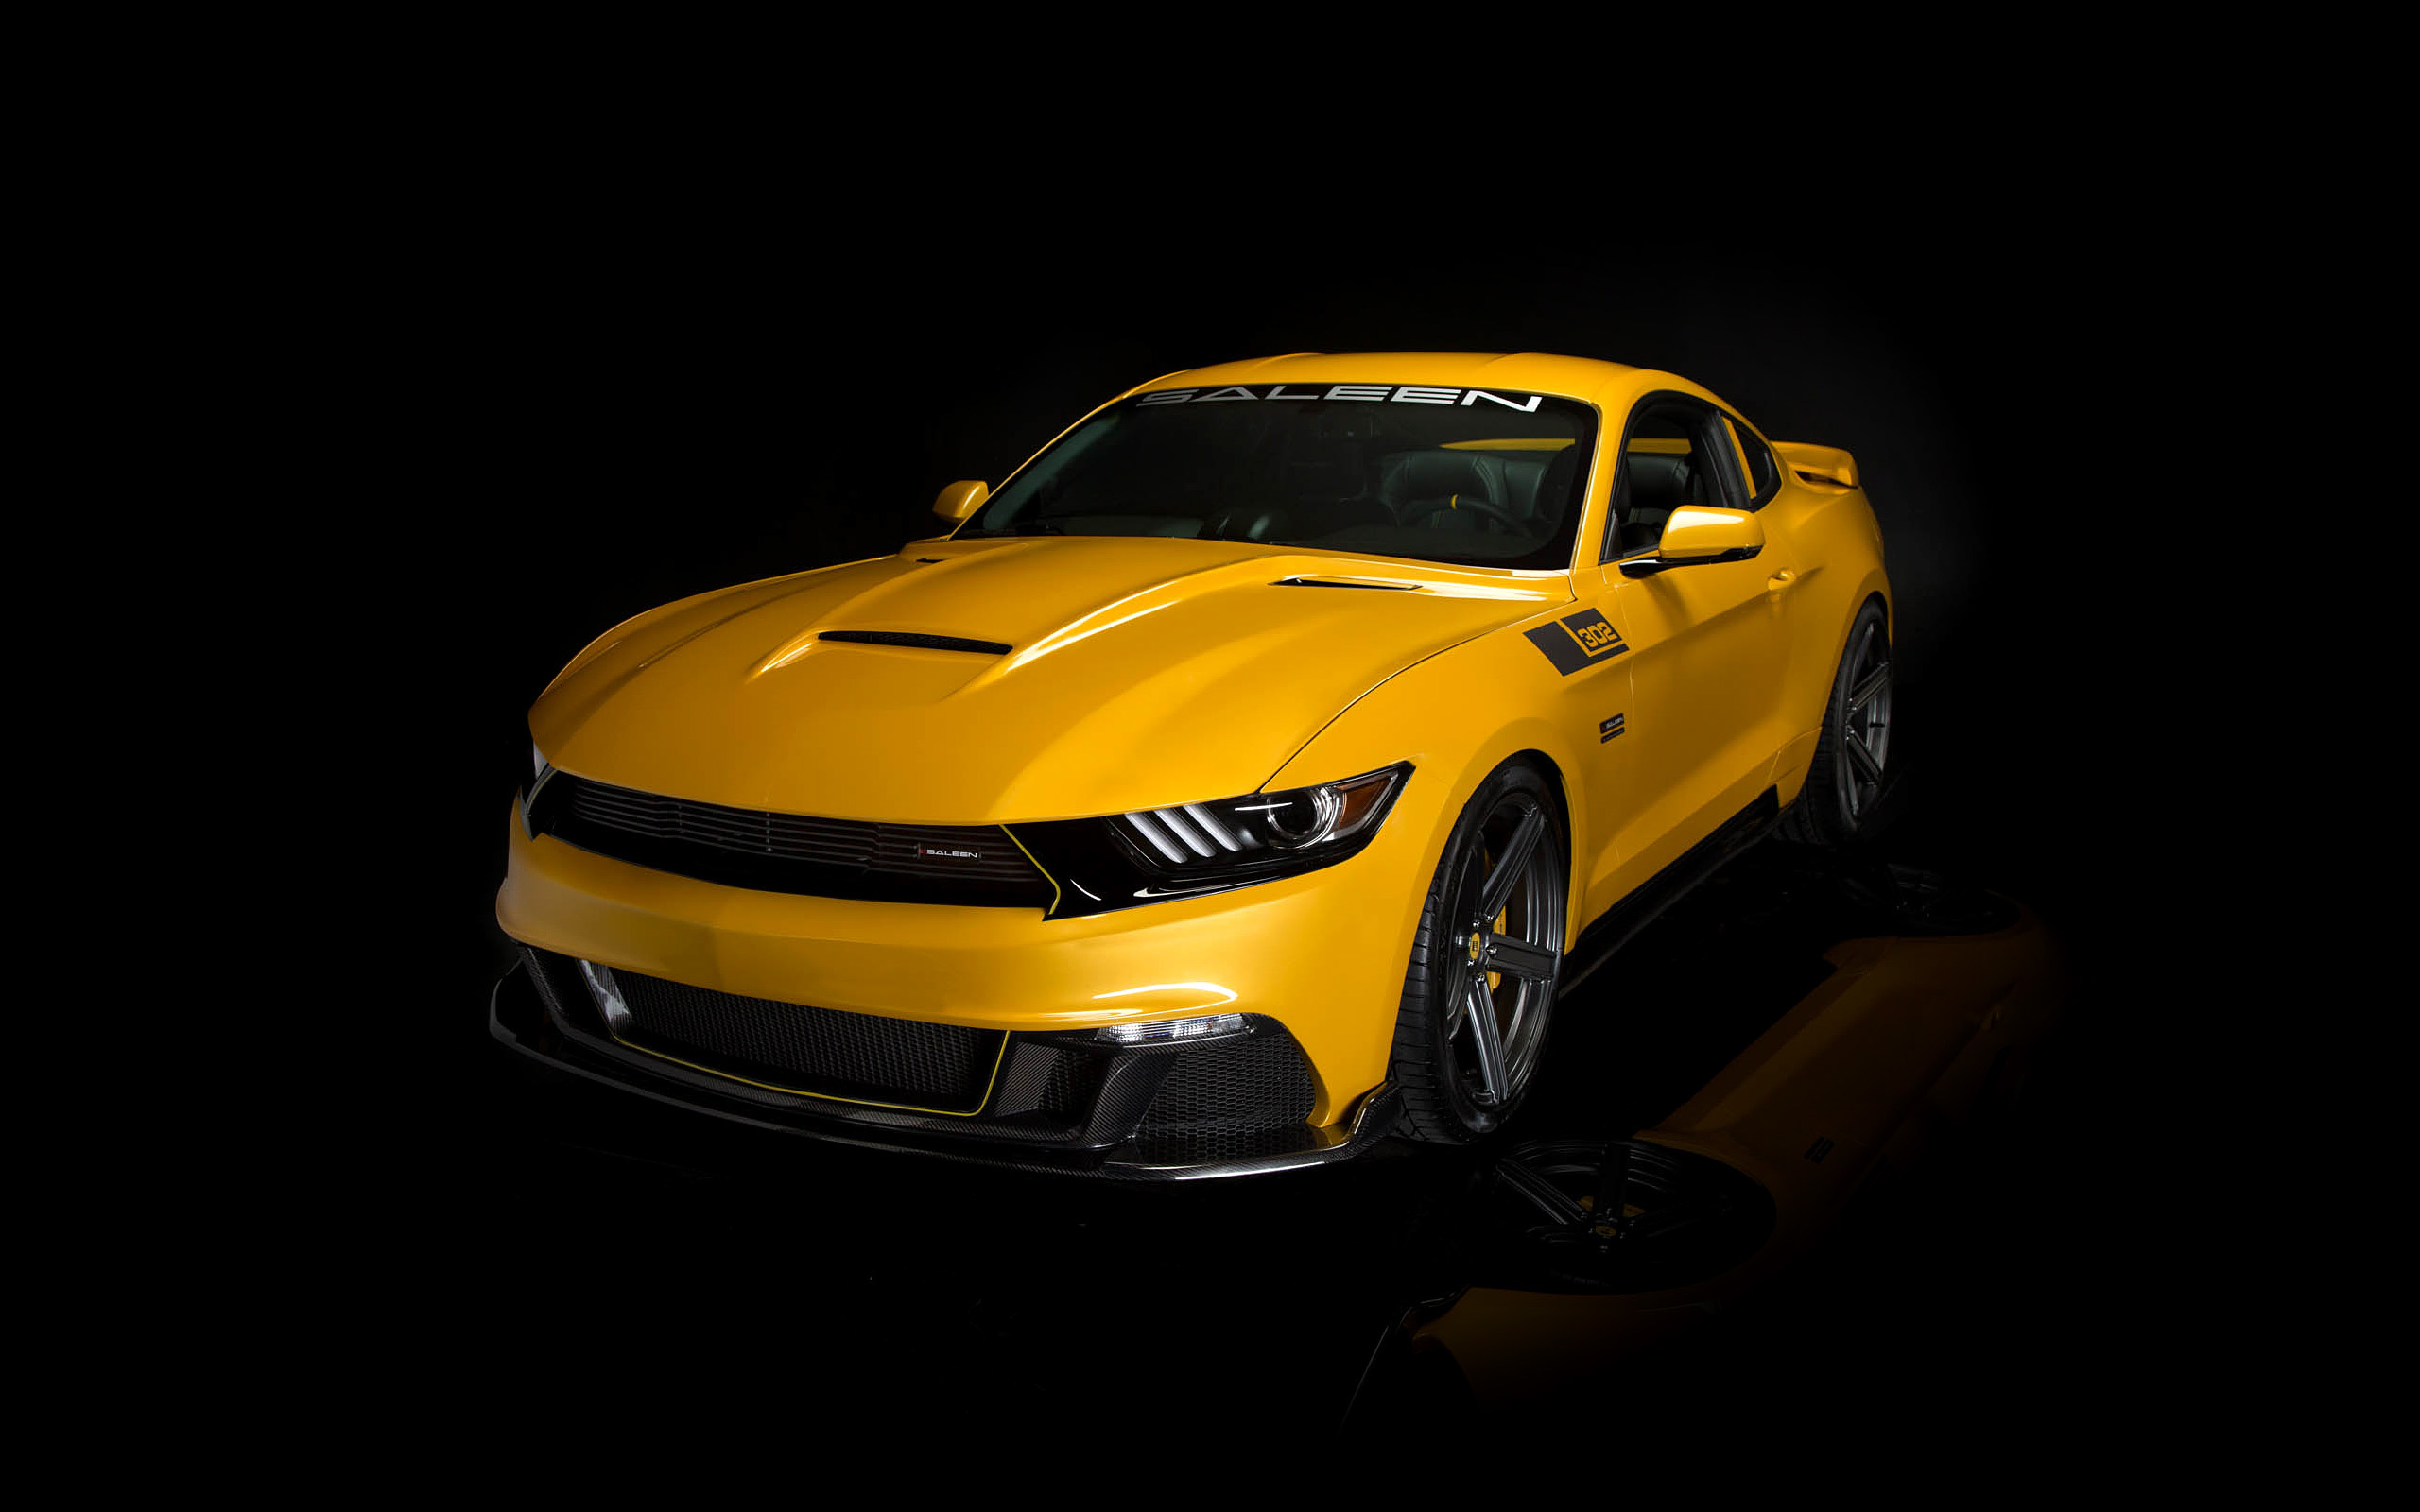 2015 Saleen Mustang S302 Black Label Wallpaper Hd Car